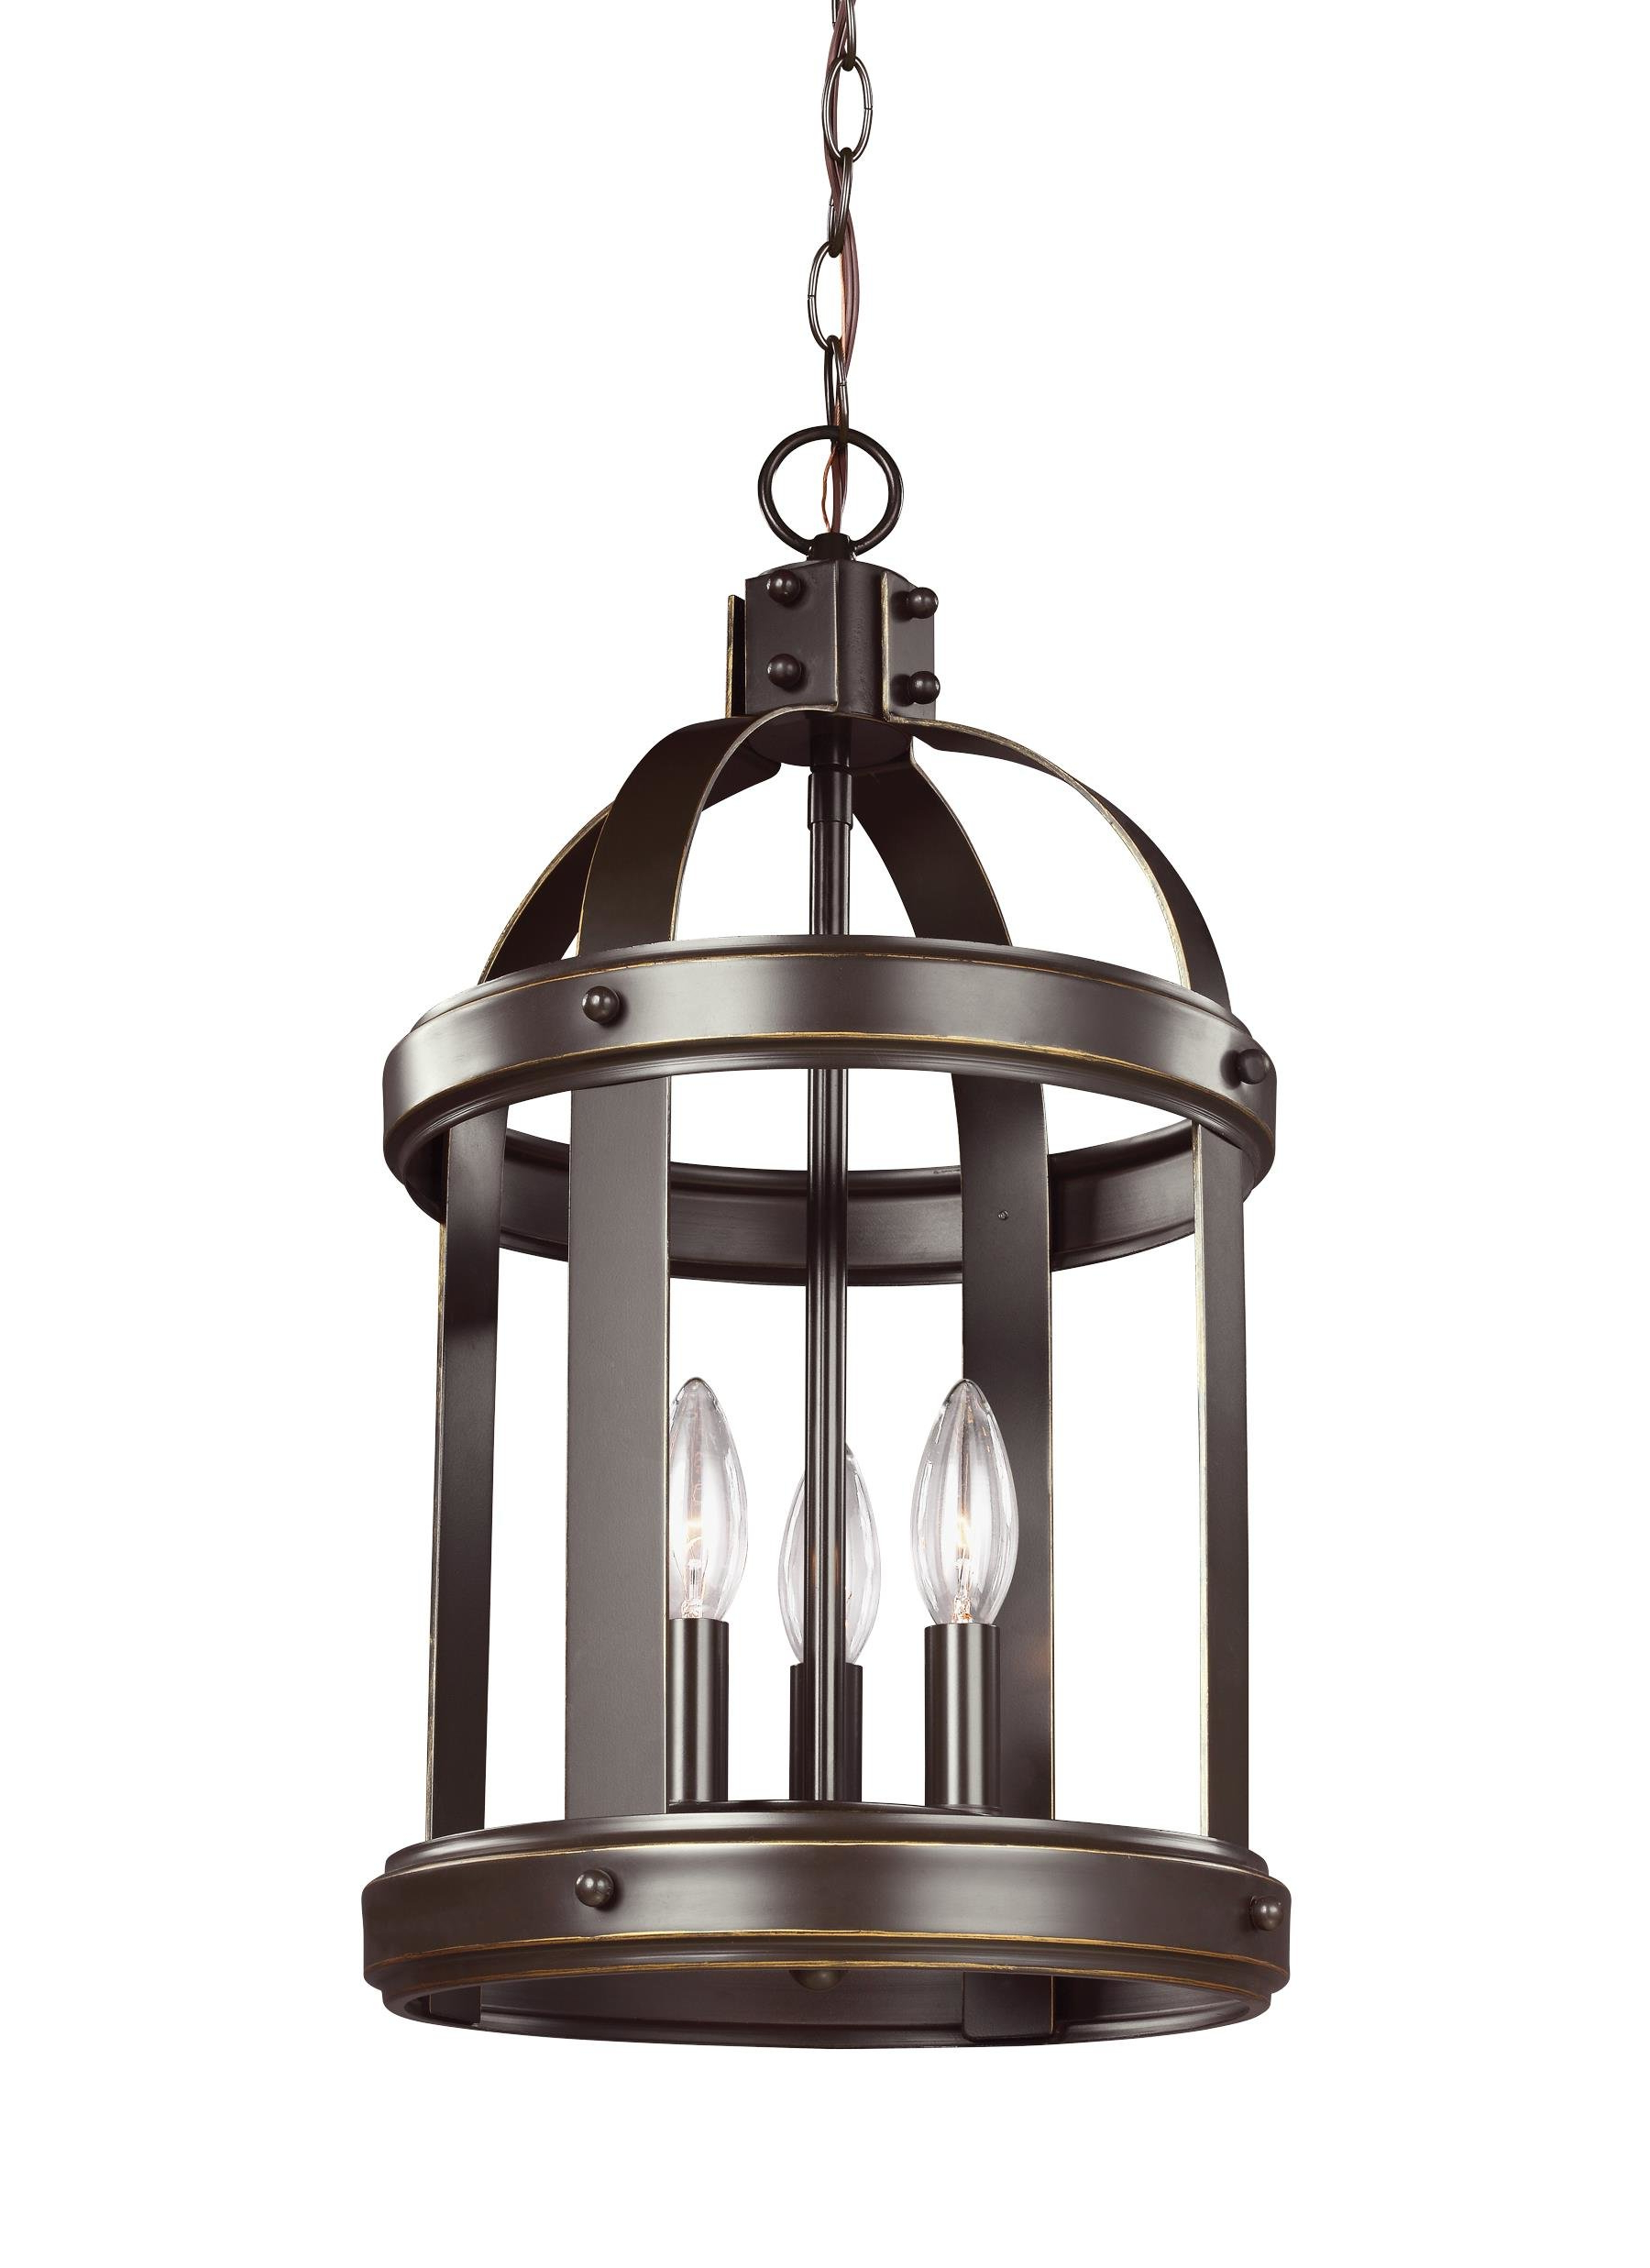 3 Light Lantern Cylinder Pendants Pertaining To Well Known Pawling 3 Light Lantern Cylinder Pendant (View 4 of 20)